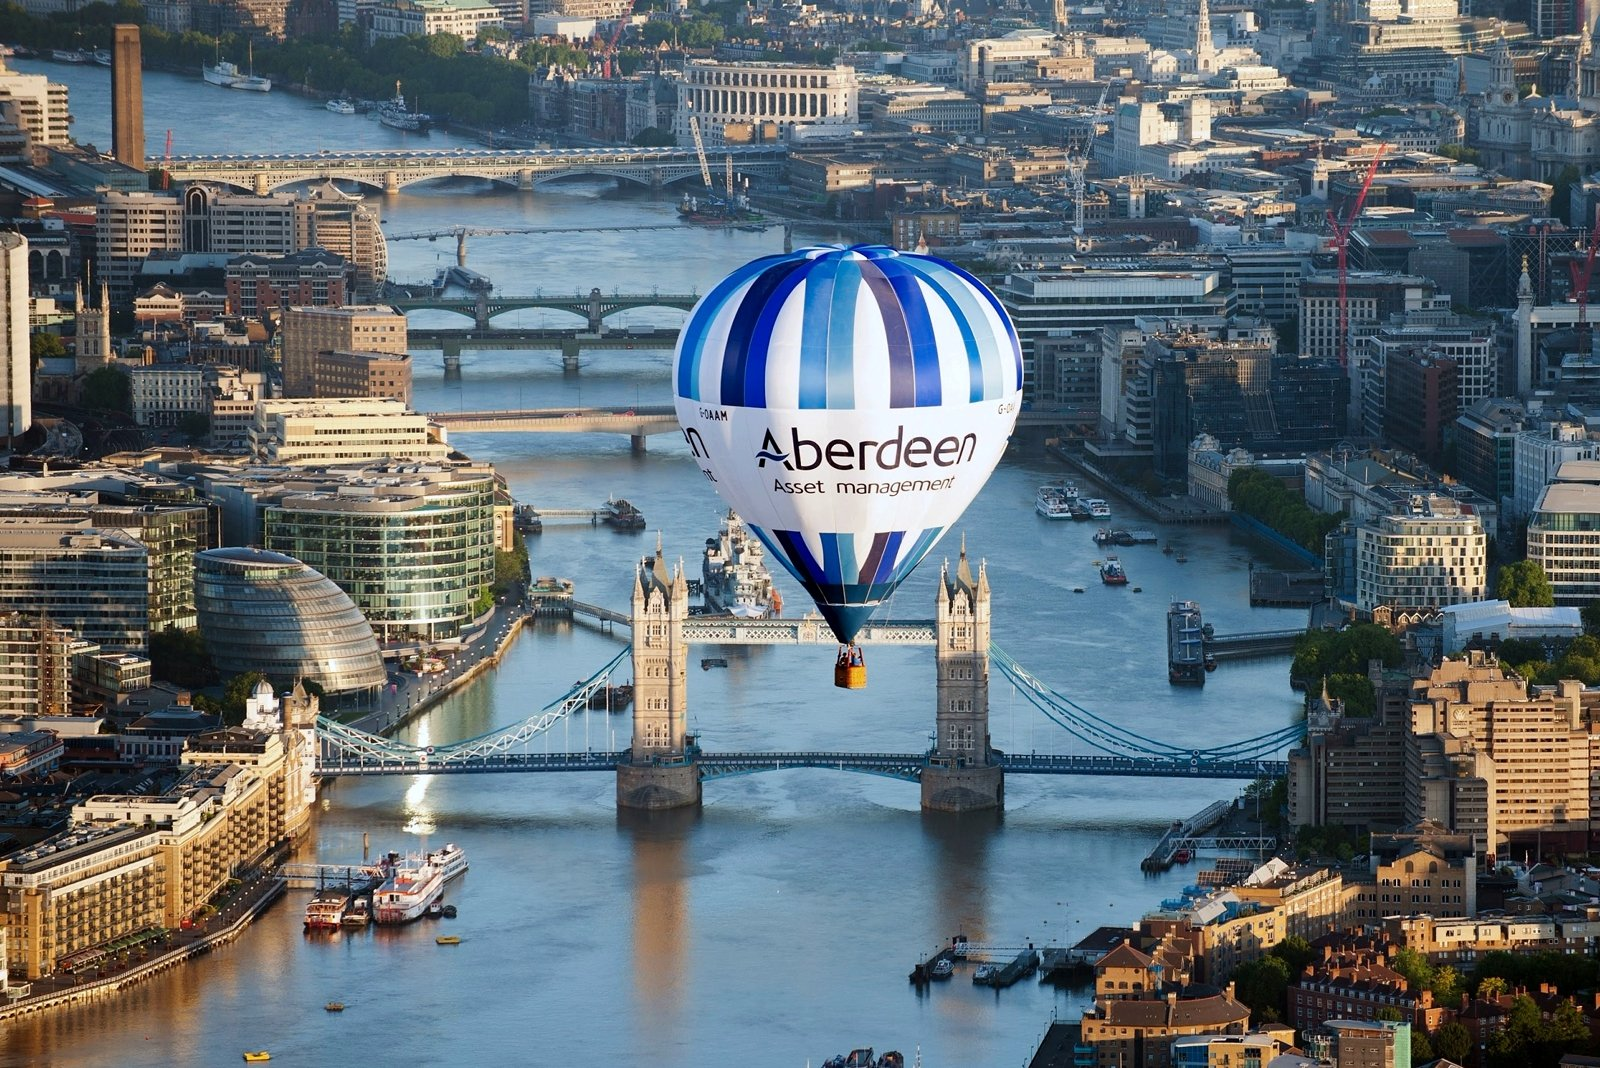 How to fly on a hot air balloon in London